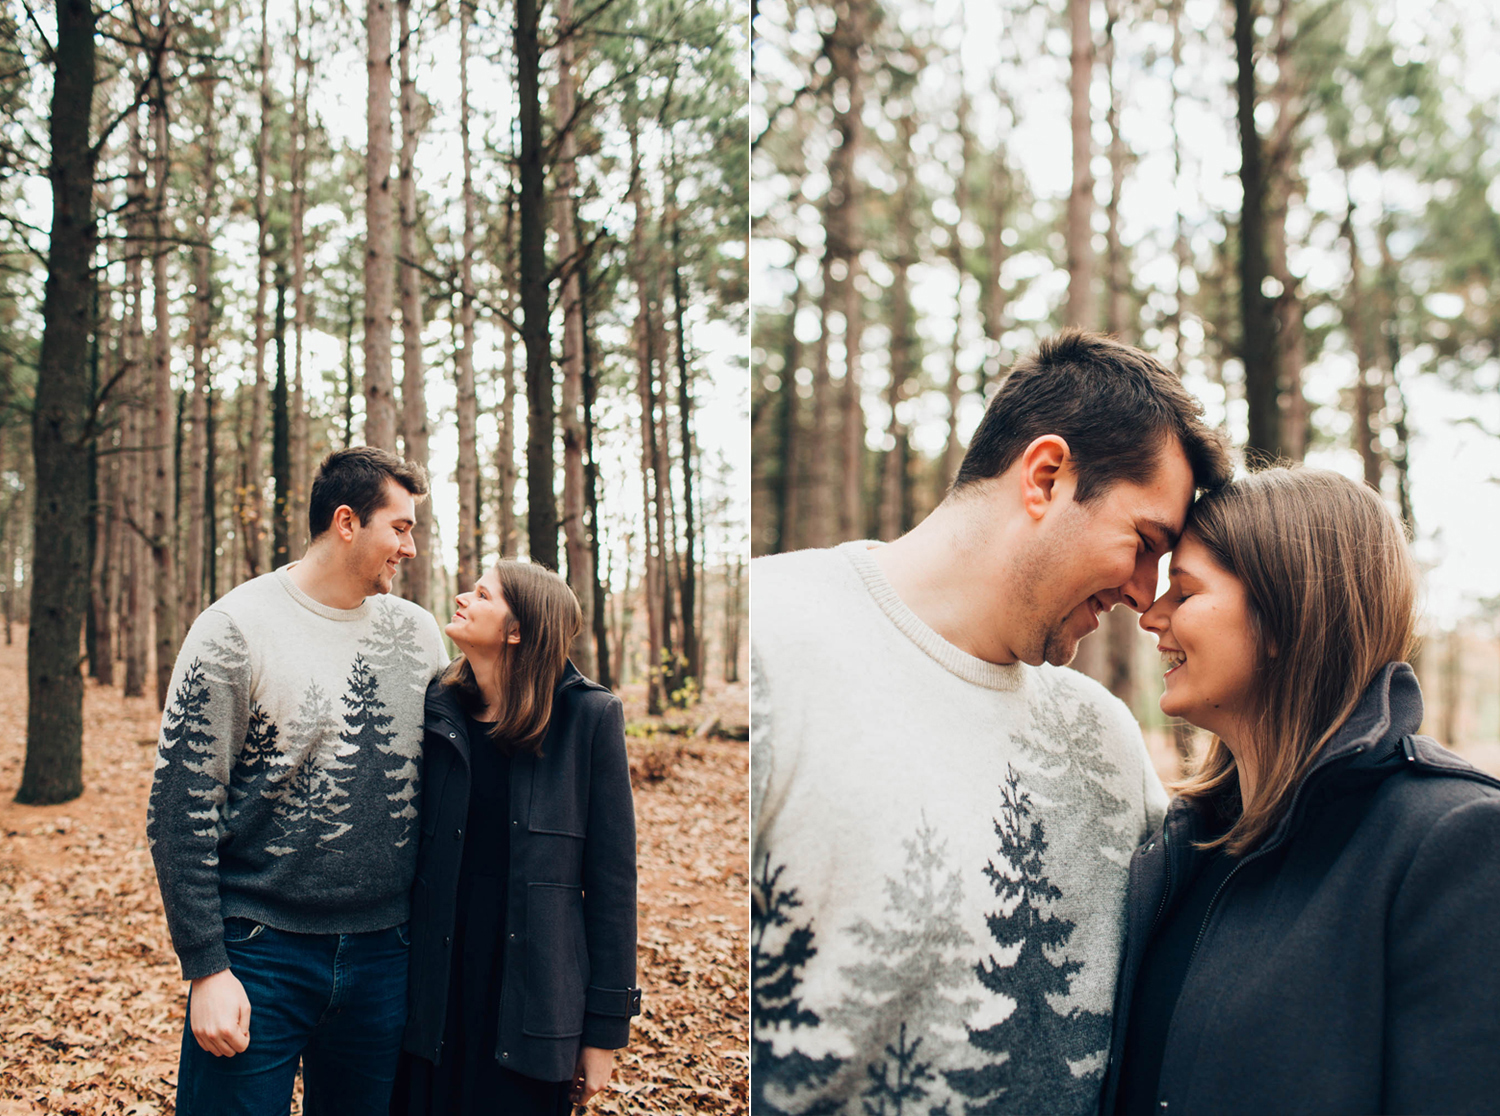 Jillian VanZytveld Photography - Grand Rapids Engagement Photography - 07.jpg